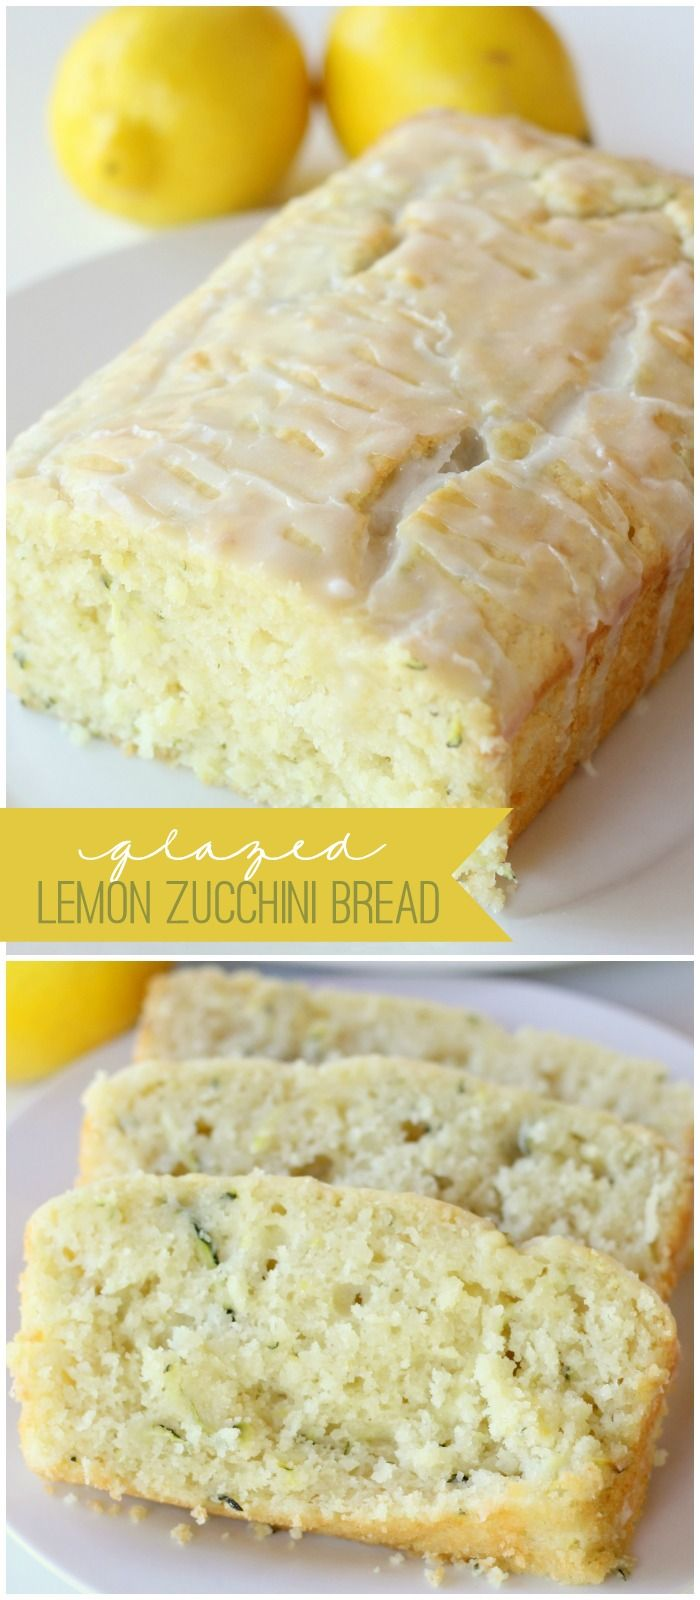 Glazed Lemon Zucchini Bread: Lemon Cakes, Glazed Lemon, Zucchini Breads Recipes, Quick Breads, Zucchini Recipes, Breads Muffins, Lemon Zucchini Bread, Glaze Lemon, Lemon Bread